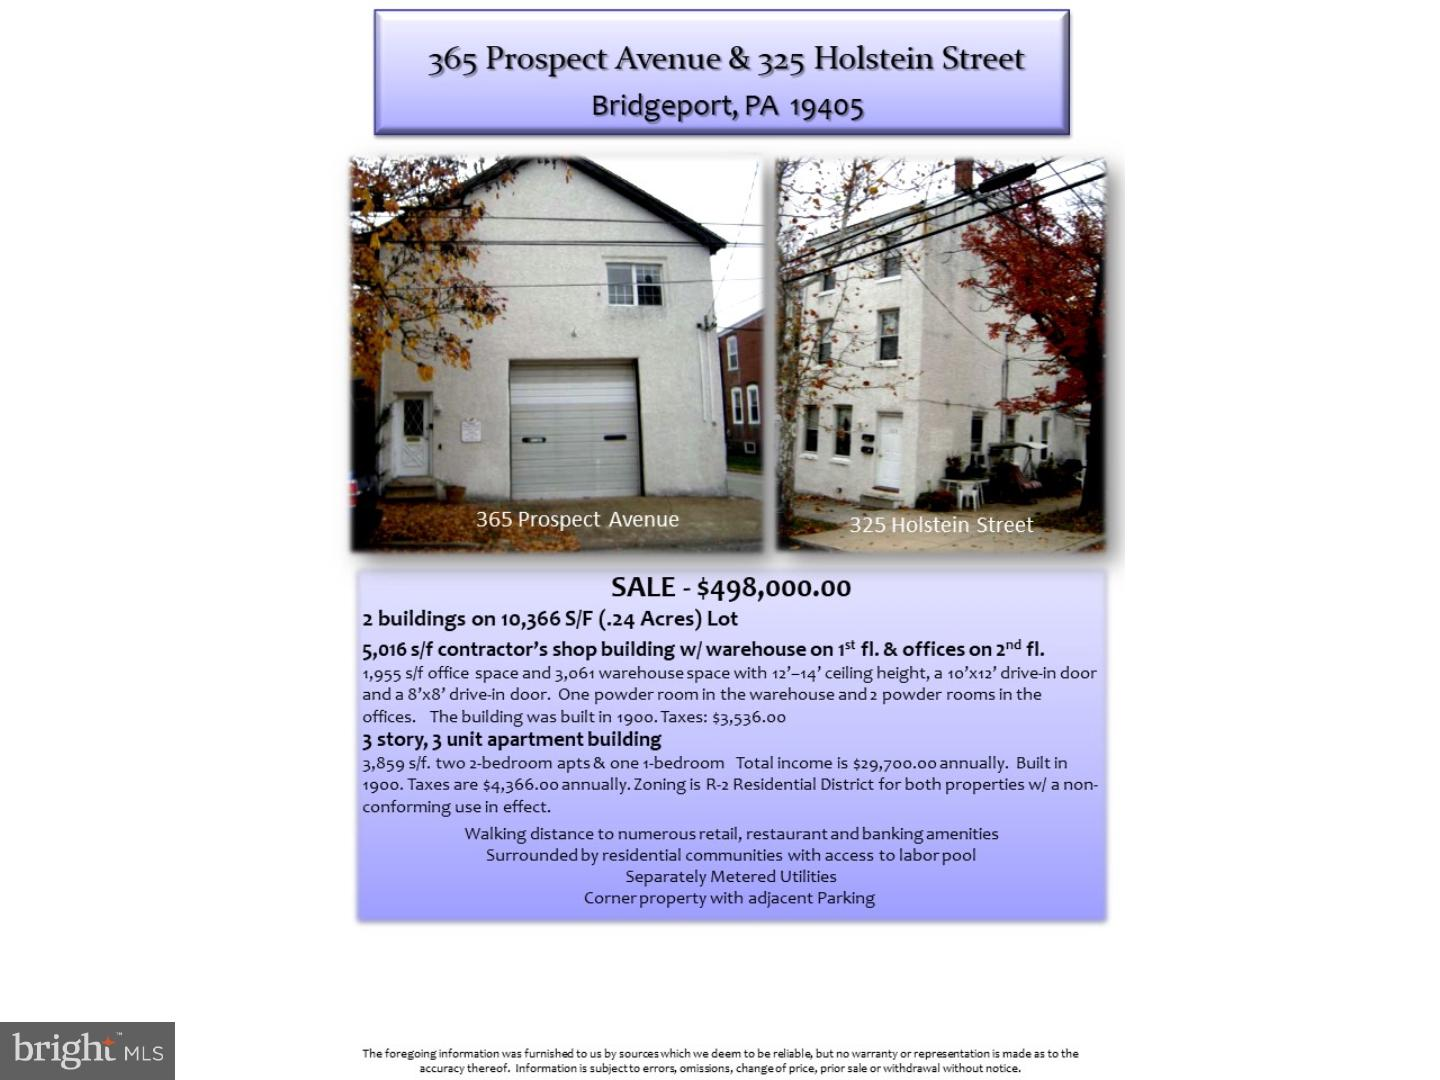 365 PROSPECT AVENUE, BRIDGEPORT, PA 19405